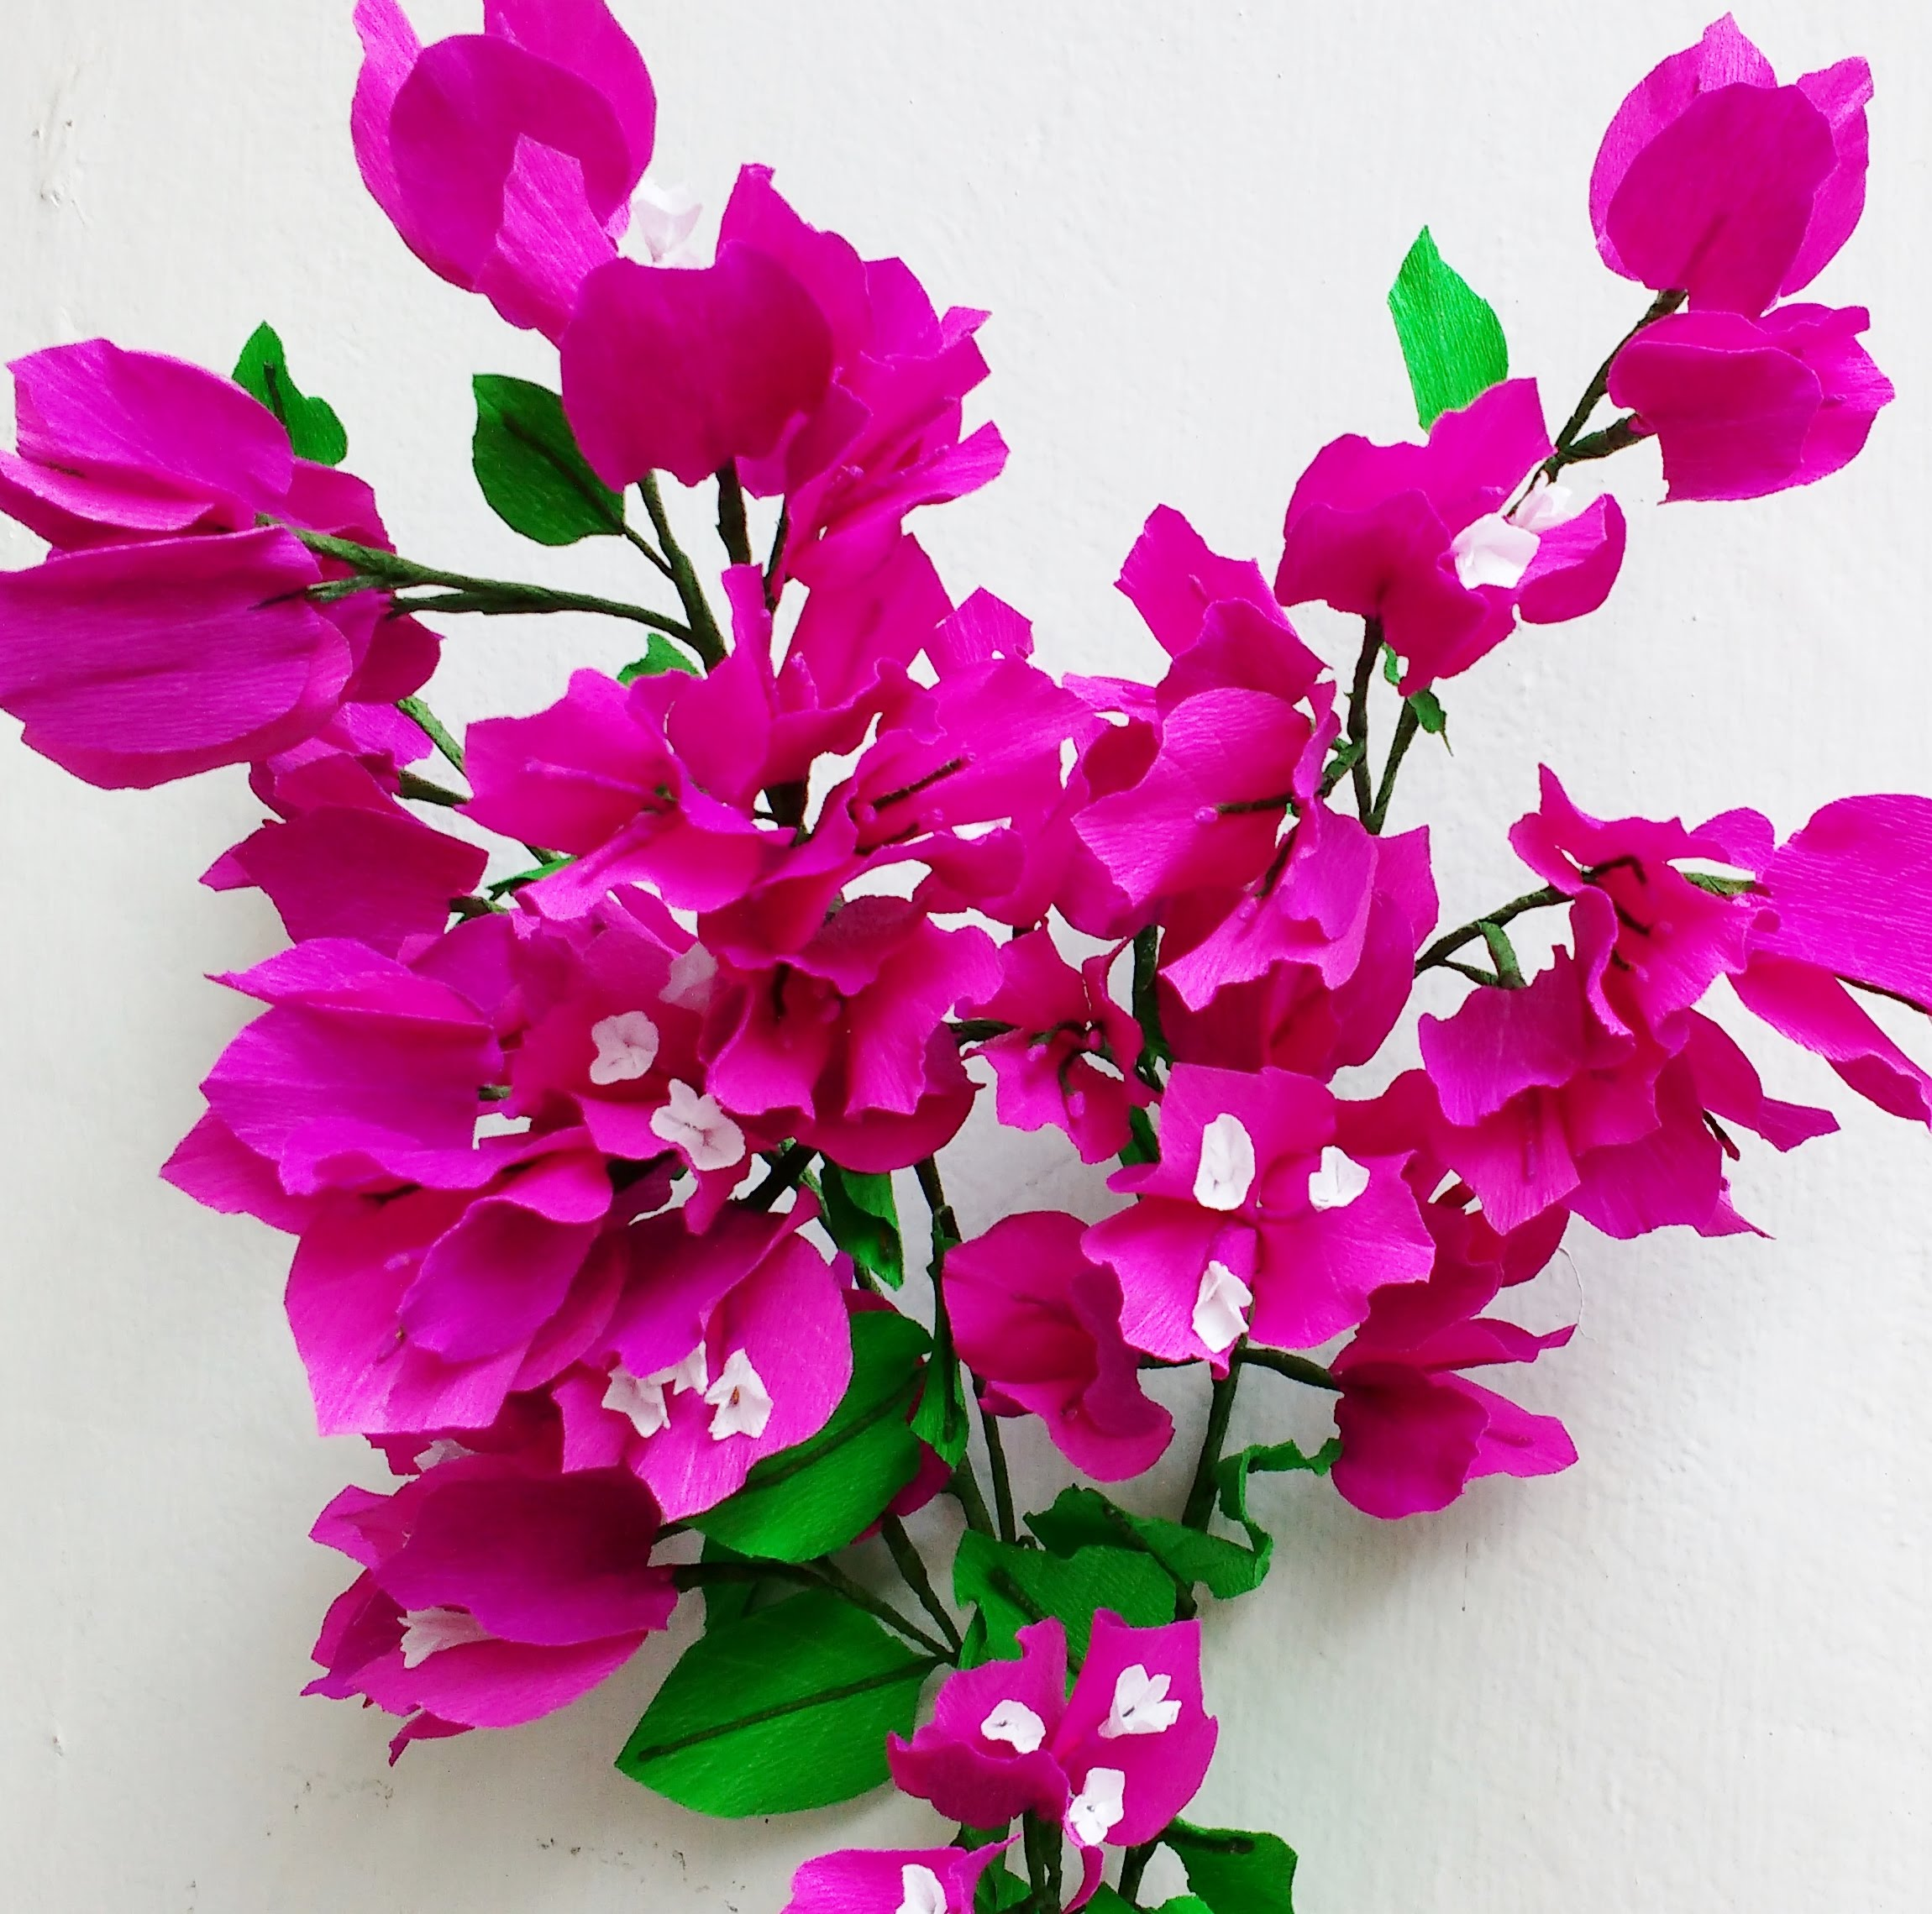 Free Photo Flowers Bugambilia Plants Trees Pink Free Download